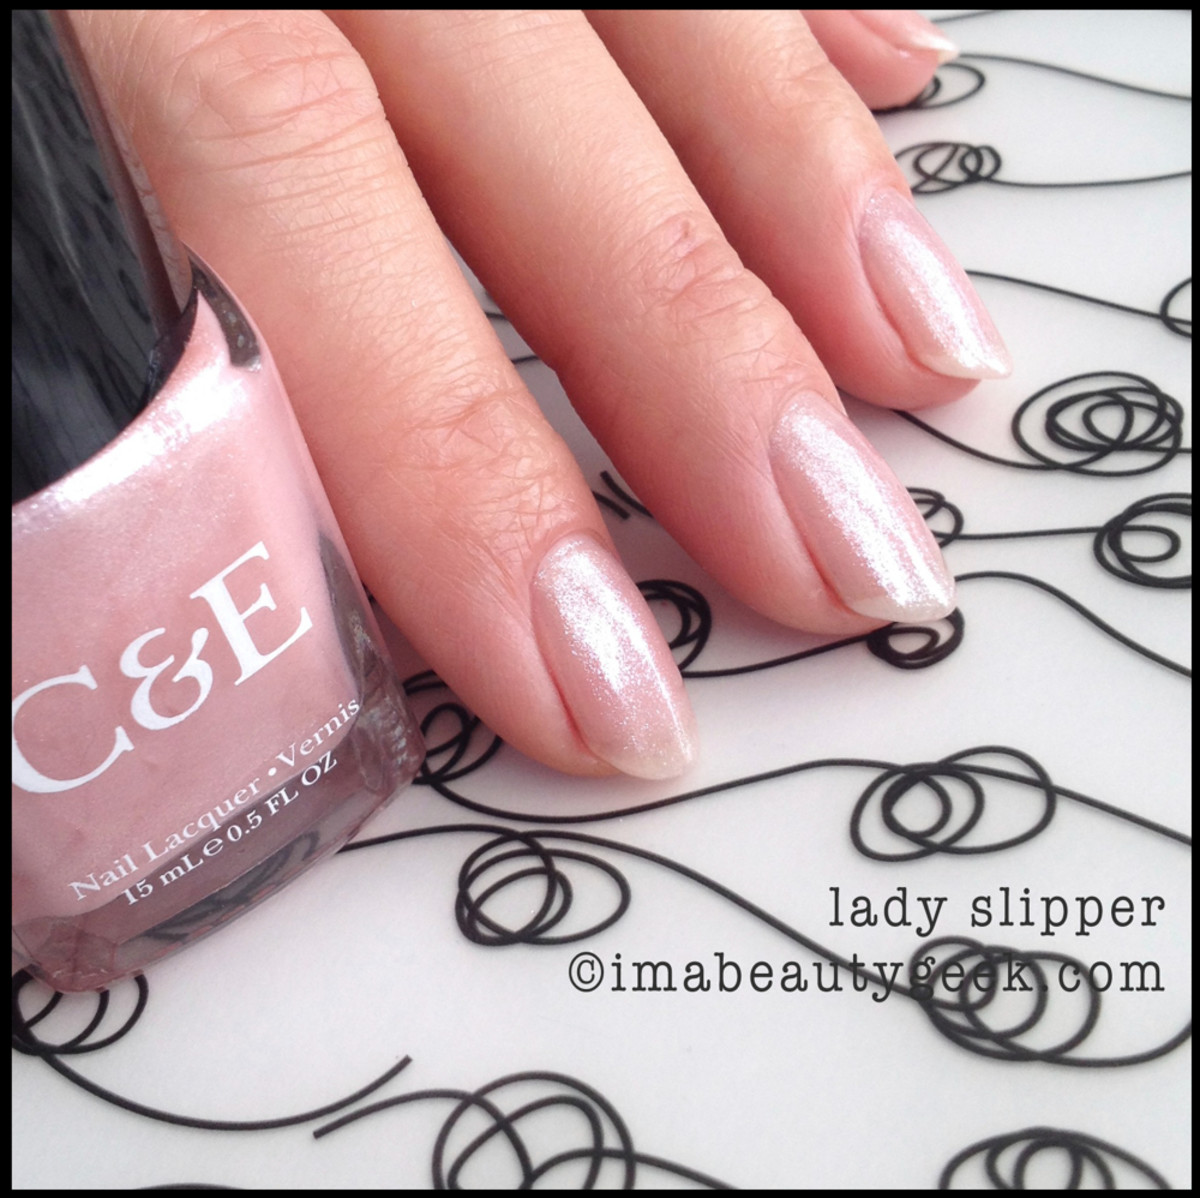 Crabtree & Evelyn Polish Lady Slipper